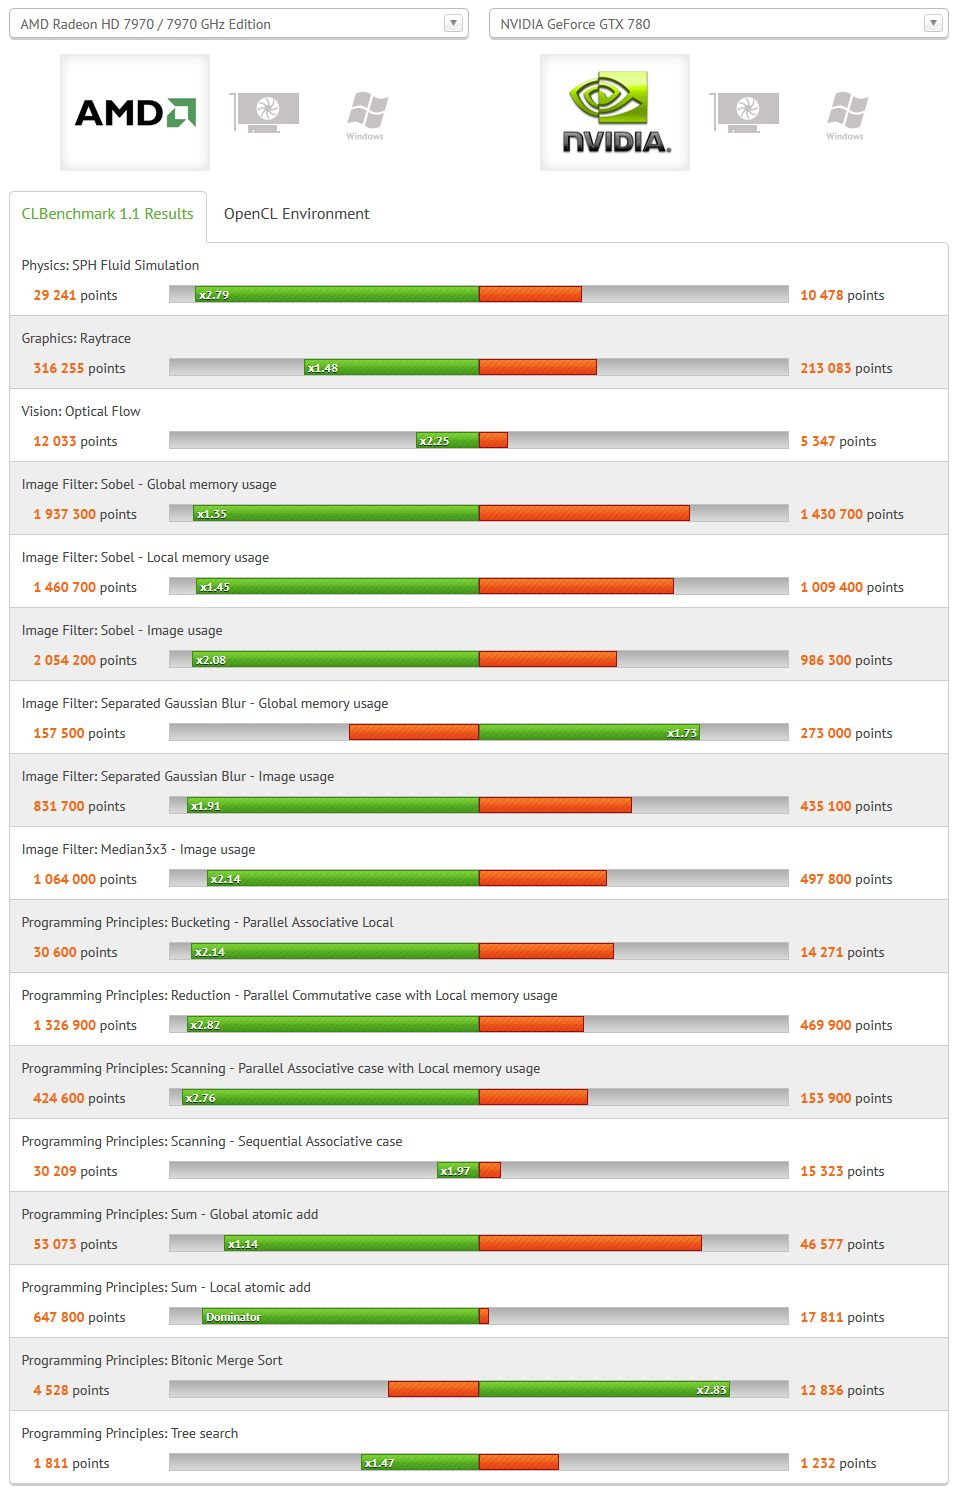 CLBenchmark Radeon HD 7970 vs GeForce GTX 780